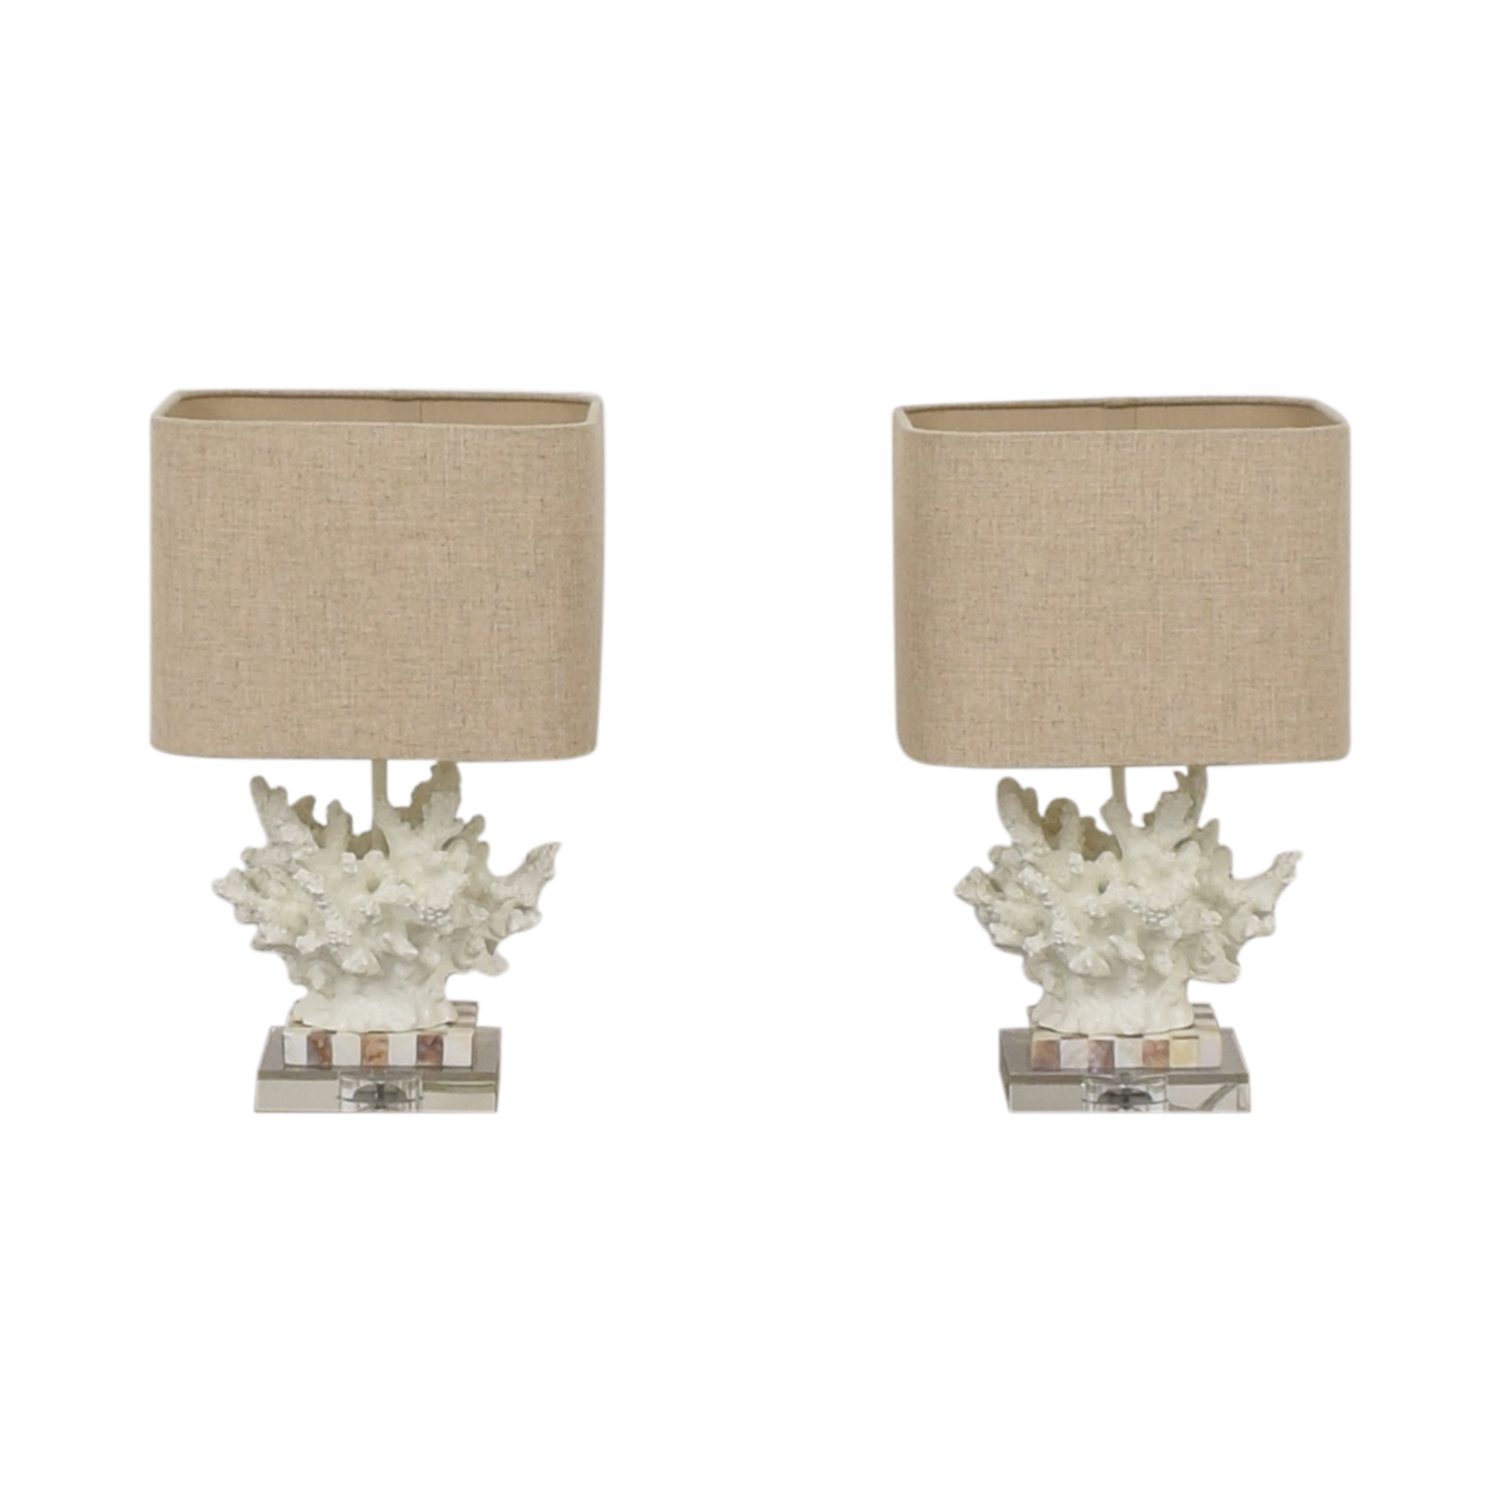 buy Couture Lamps Wayfarer Accent Lamps Couture Lamps Decor